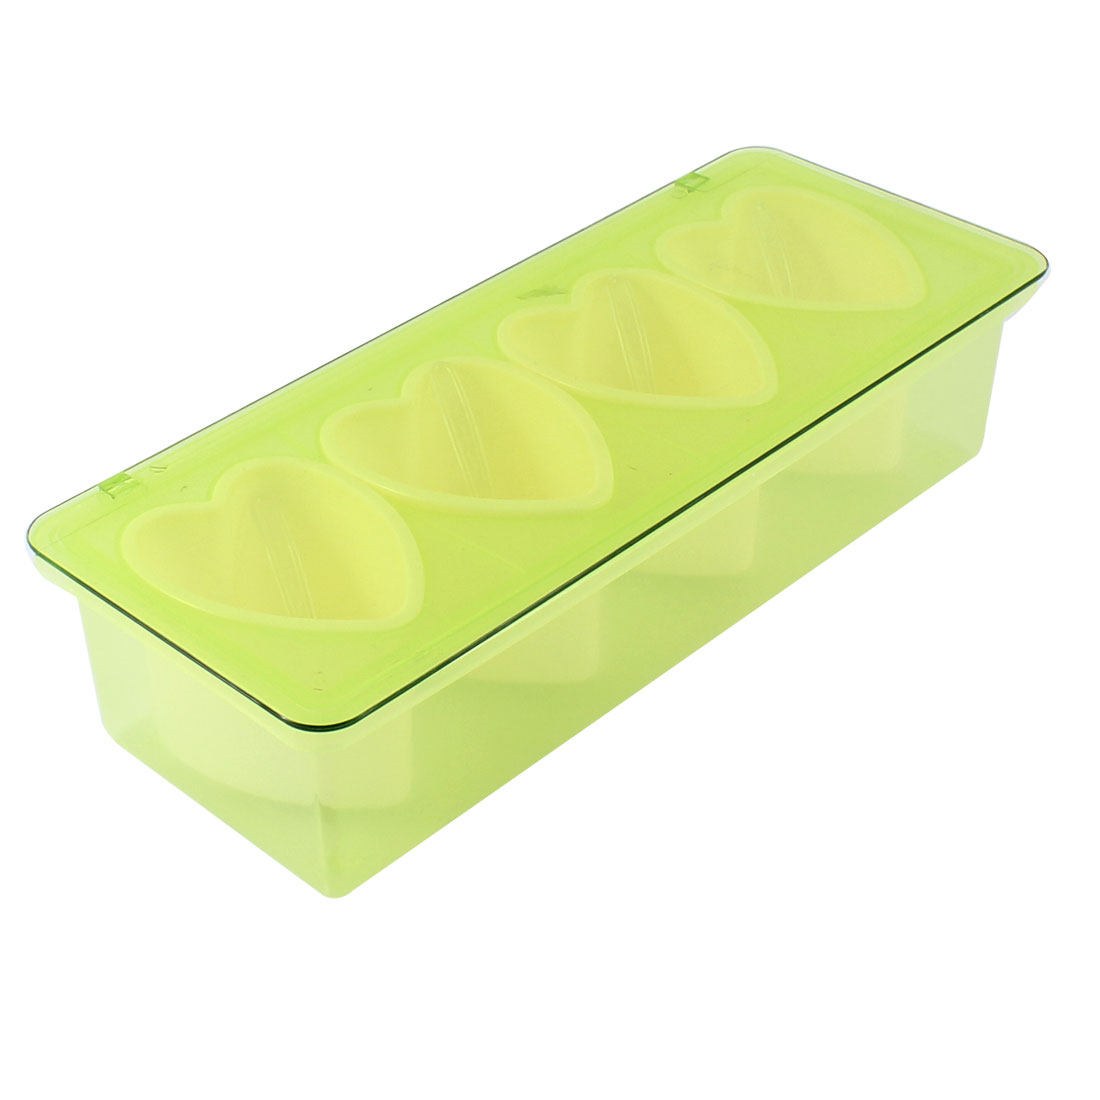 Bar Kitchen 4 Compartments Condiment Holder Container Dispenser Tray Green